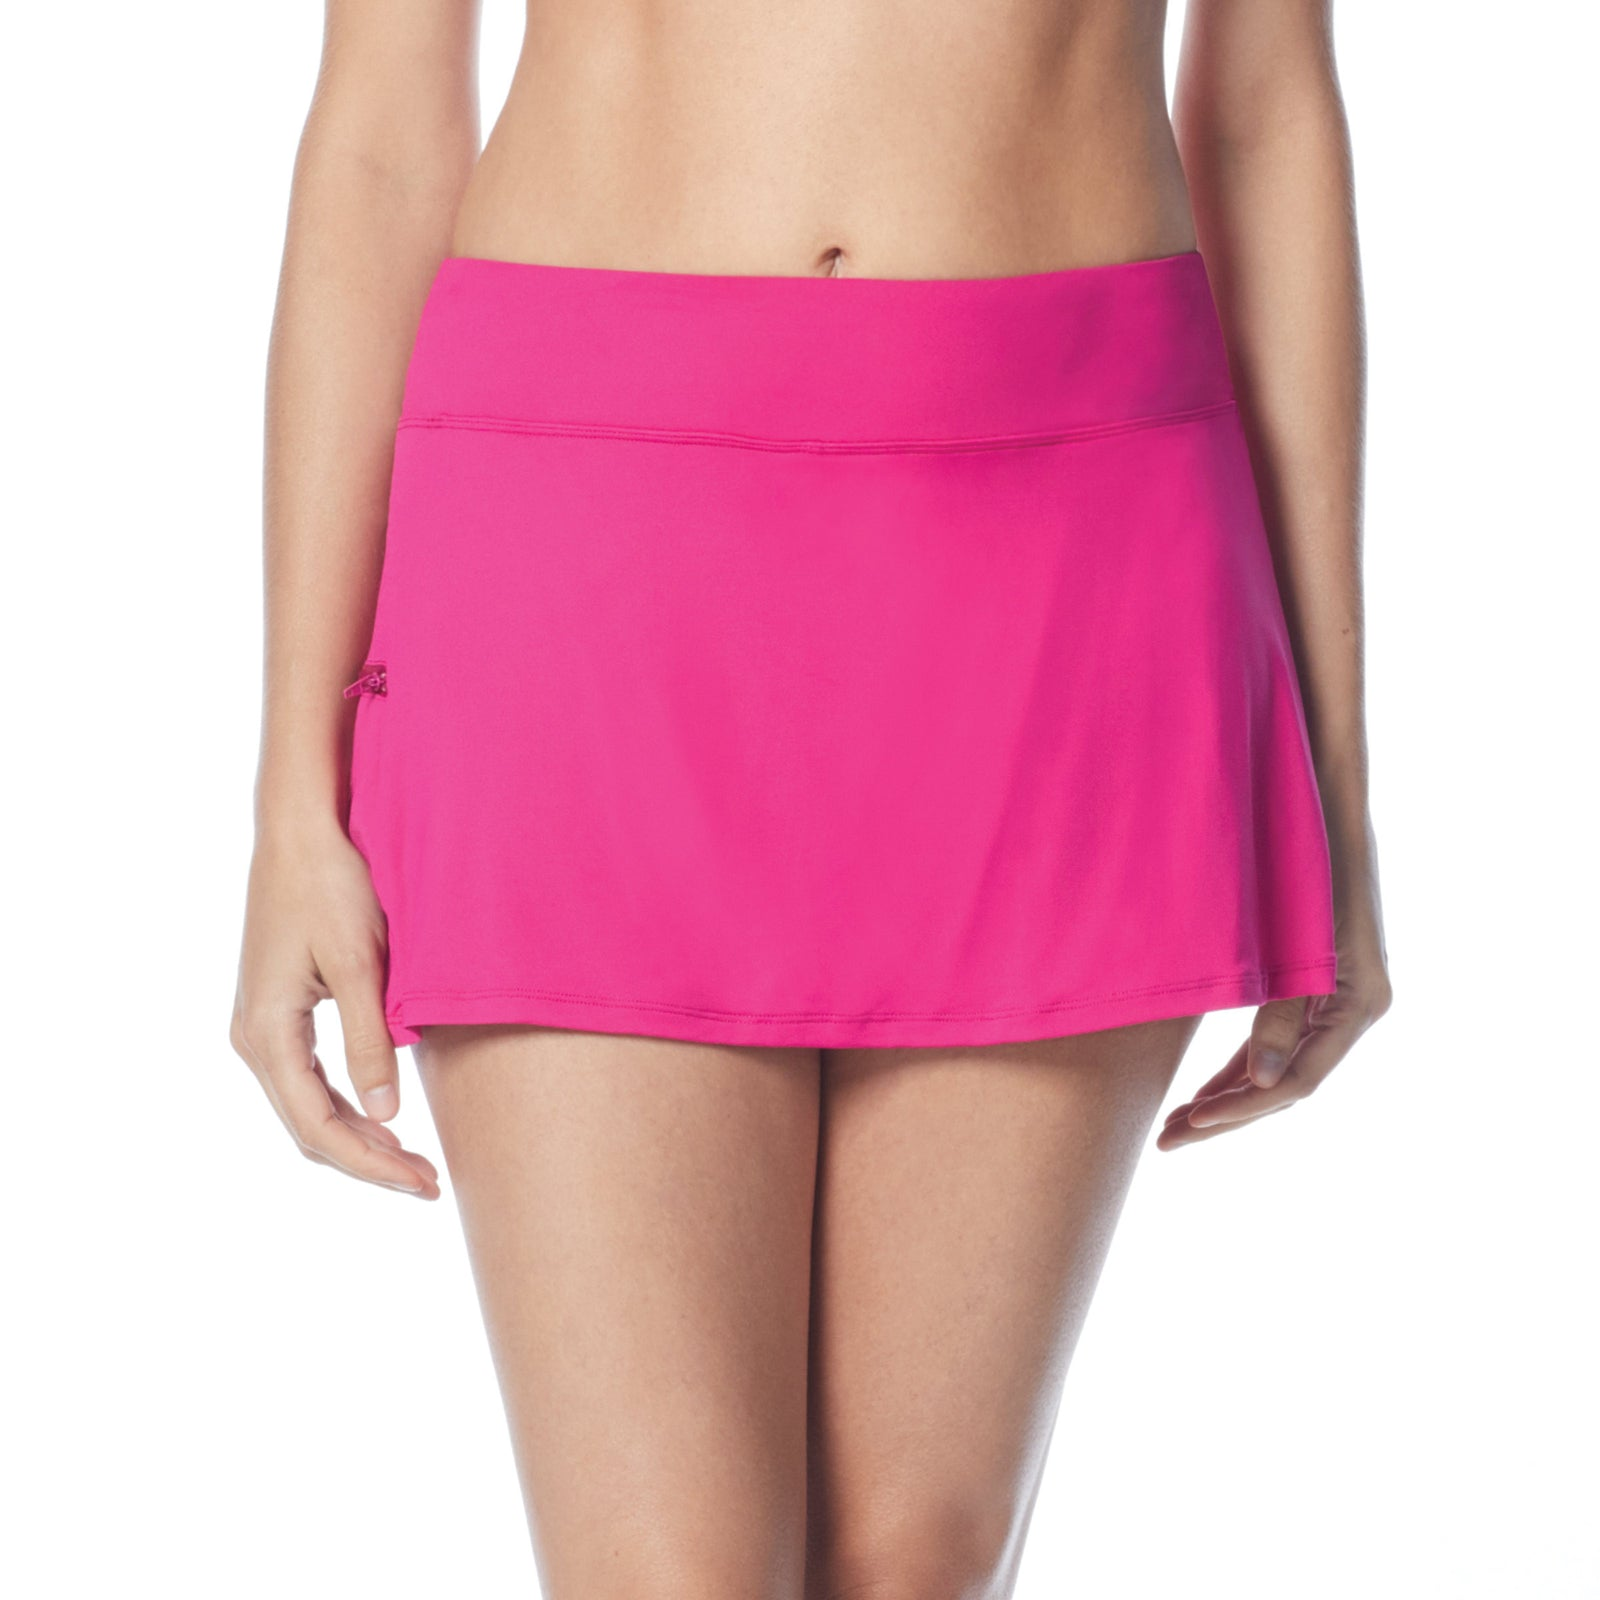 Swim Skort Boy Shorts Attached Underneath Full Coverage Zippered Pocke 50+ UPF 4 Way Stretch Soft Touch Comfort Fabric with Lycra® Chlorine Resistant Fabric Content: 85% Nylon/15% Xtra Life Lycra® Hand Wash Cold, Line Dry berry pink